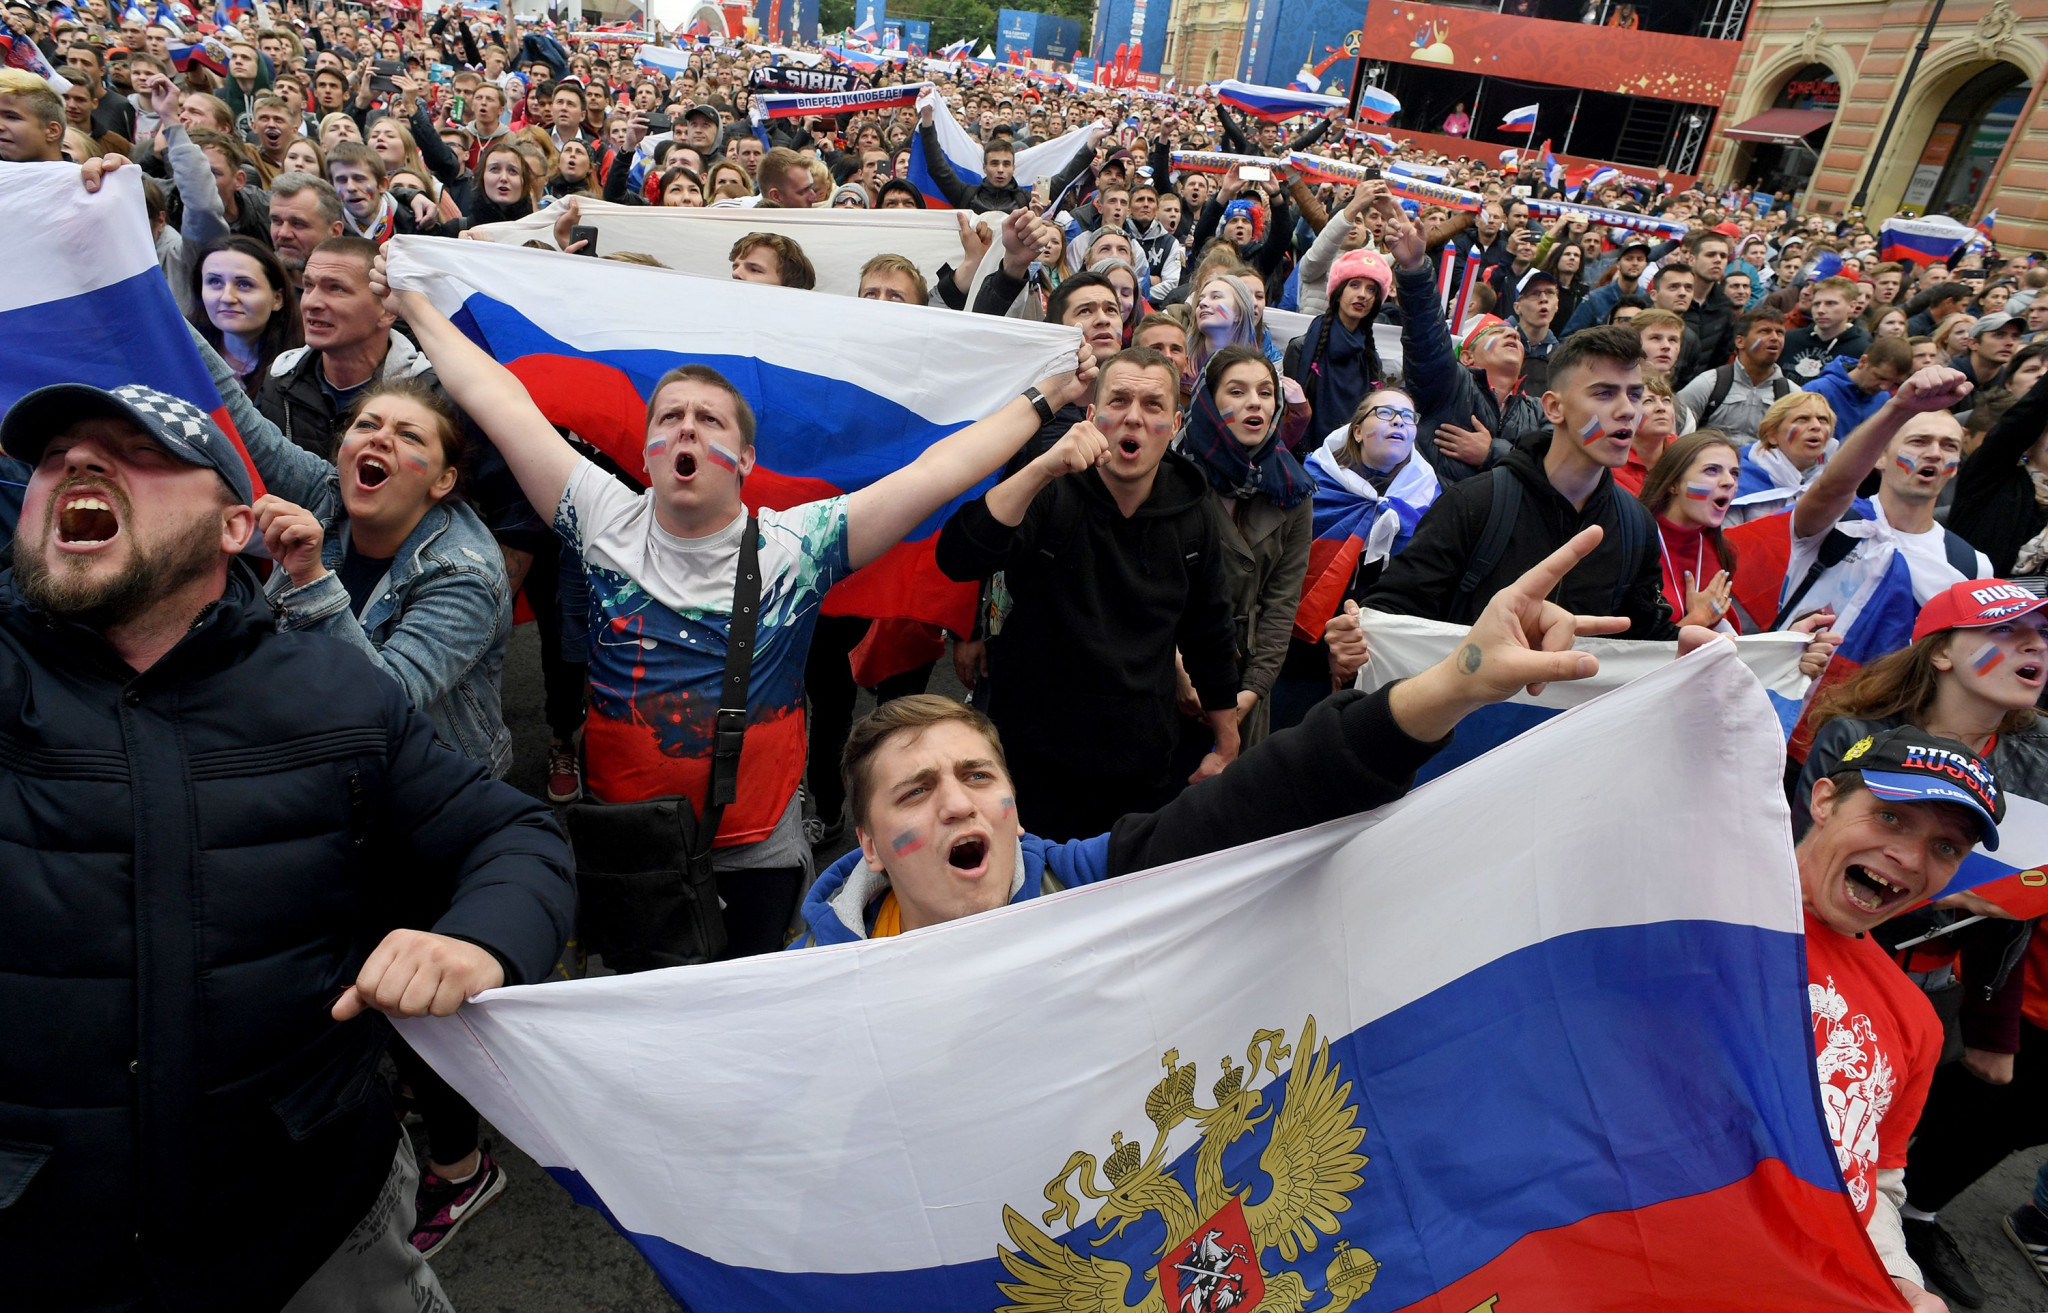 Russia fans celebrate their team's success in Saint Petersburg ©Getty Images